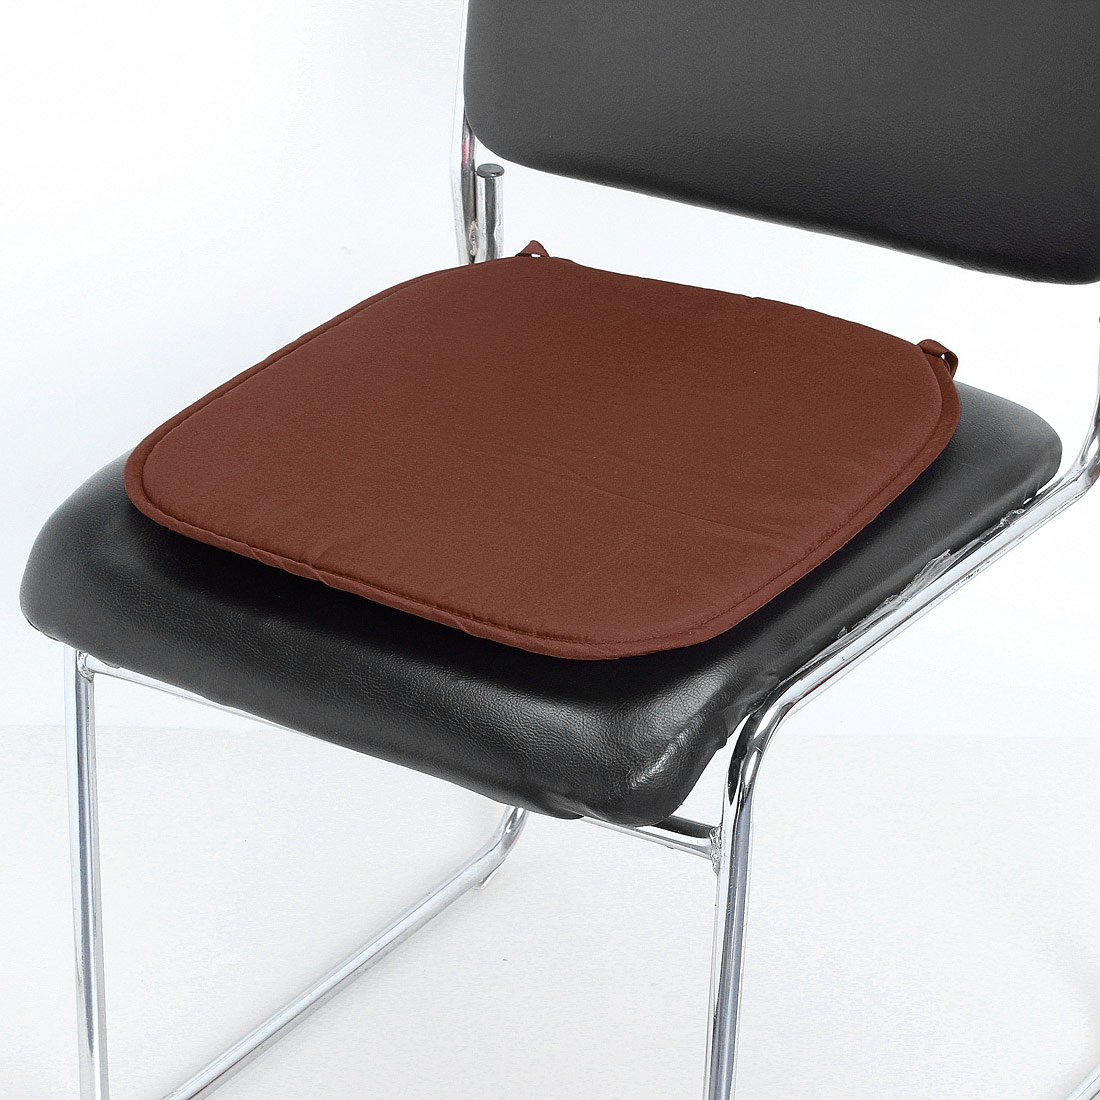 kitchen dining chair pads cheap tables and chairs home garden office seat cushion